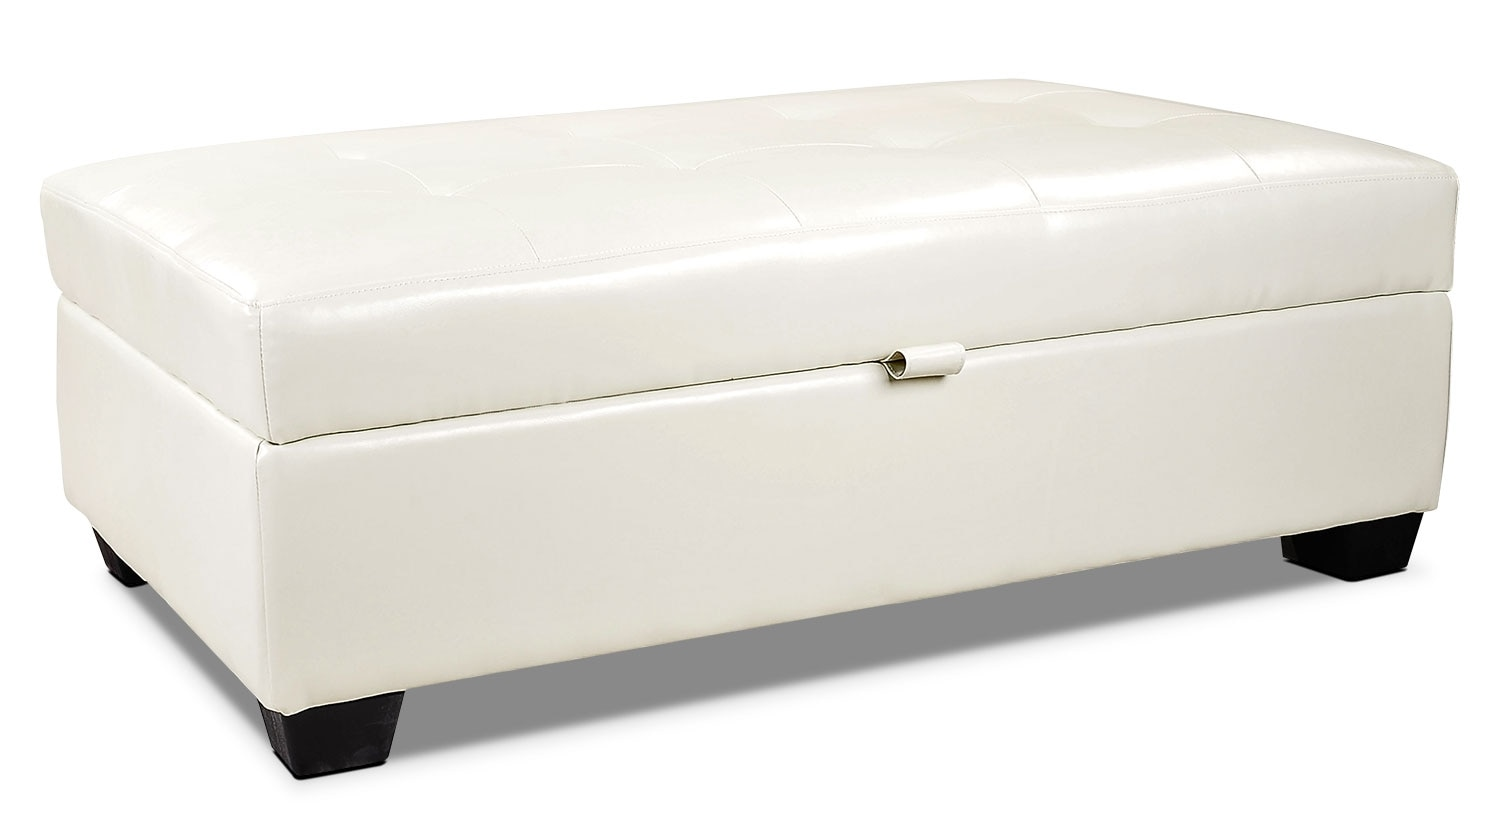 Accent and Occasional Furniture - Fresno Storage Ottoman – Cream